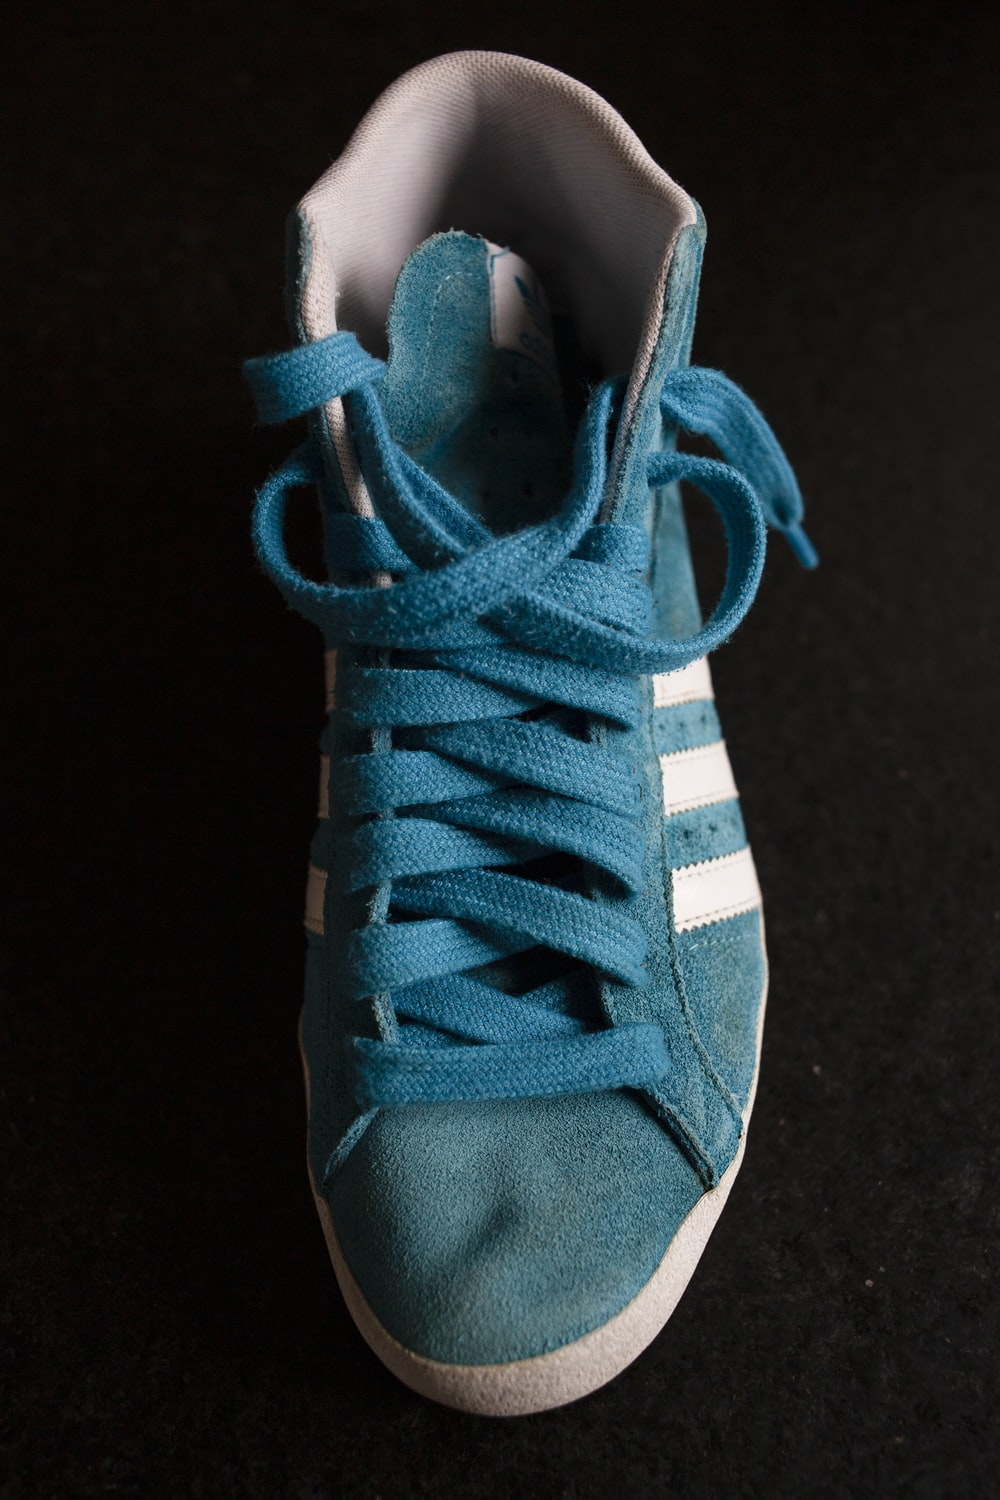 unpaired blue and white lace-up sneaker